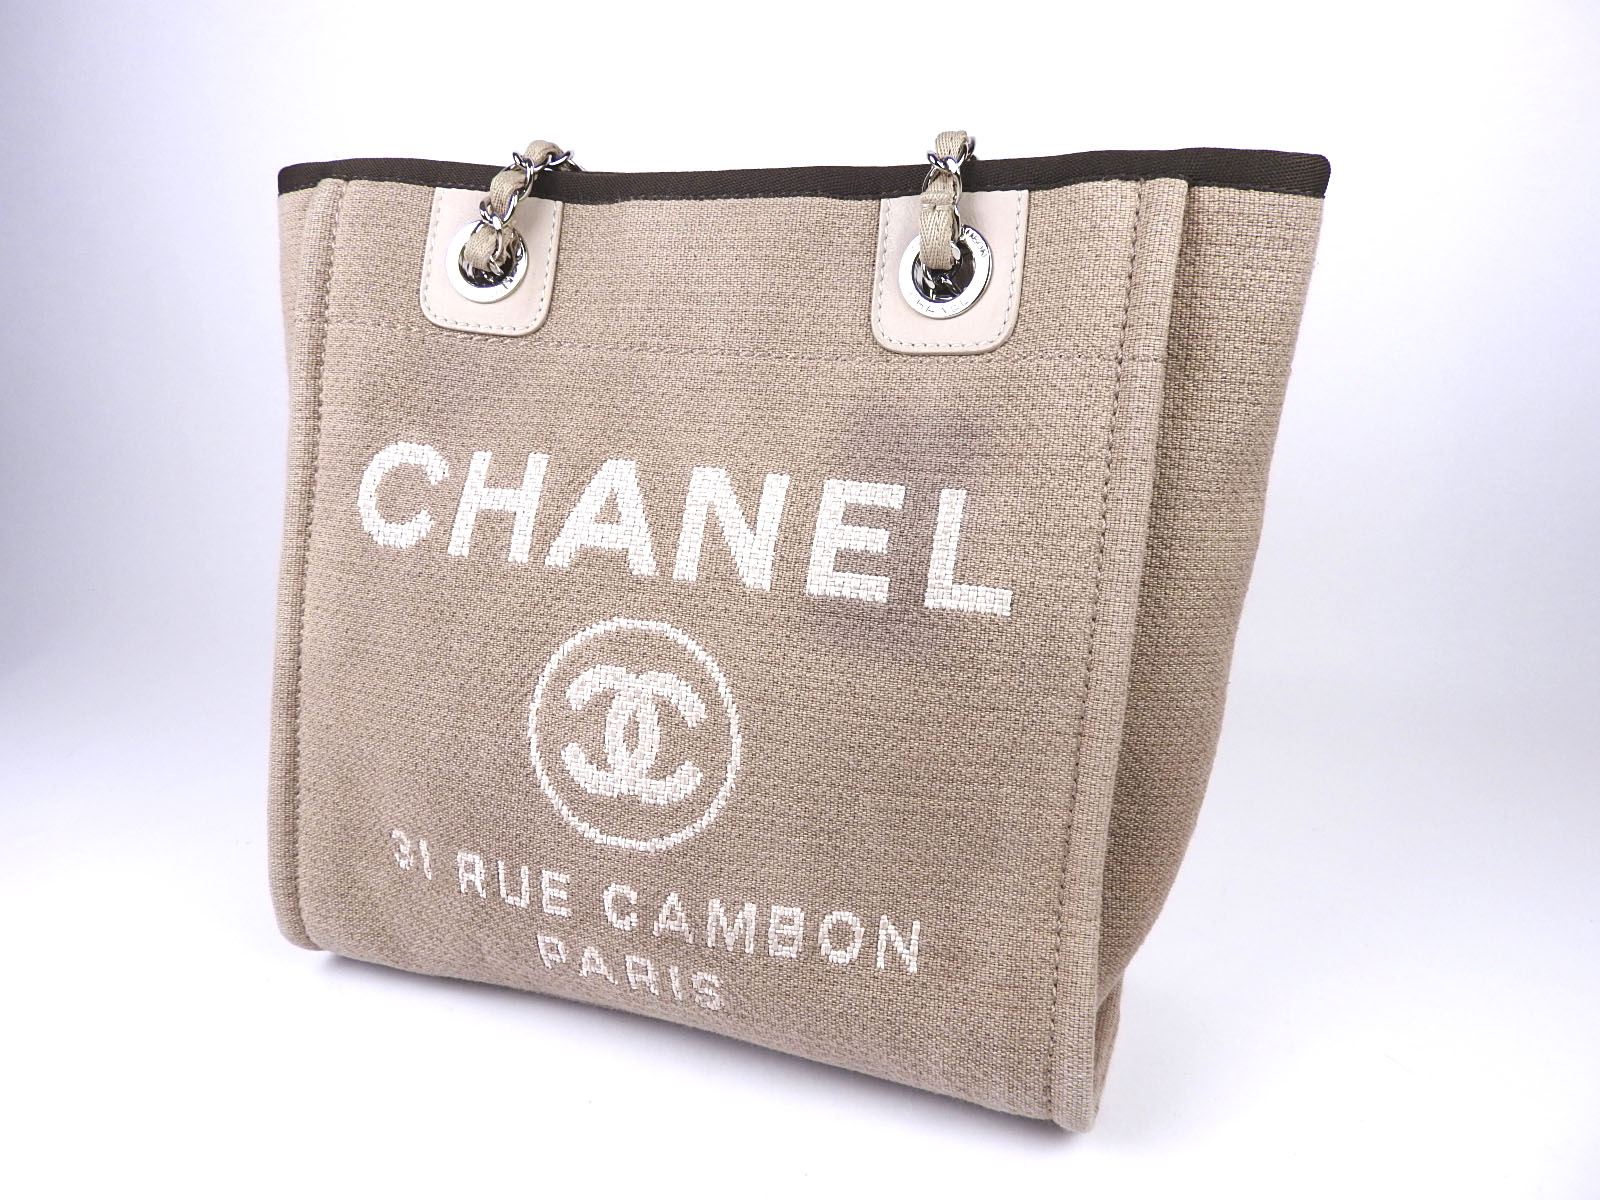 c85d2e3f0180 Chanel Deauville Canvas Tote Size | Stanford Center for Opportunity ...